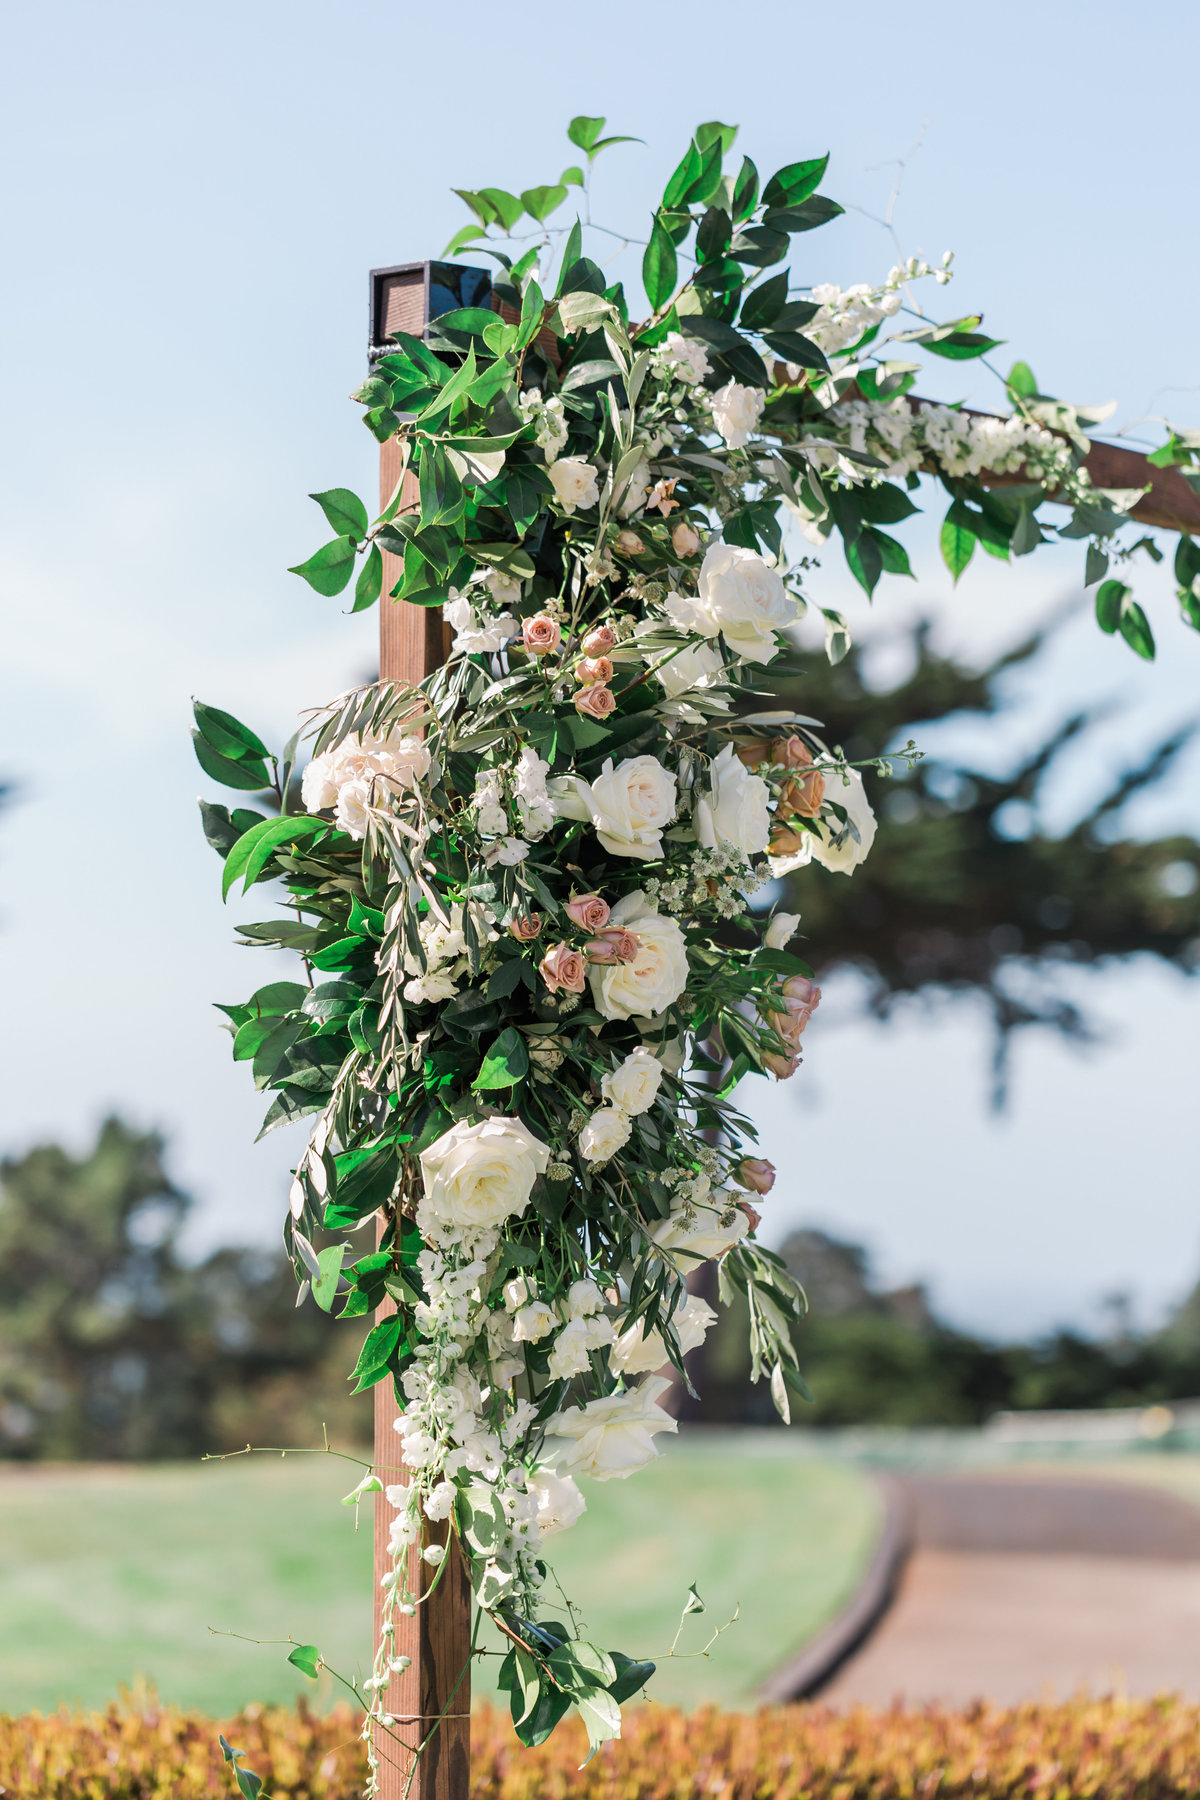 Carmel_Seaside_Chic_Wedding_Valorie_Darling_Photography - 88 of 134